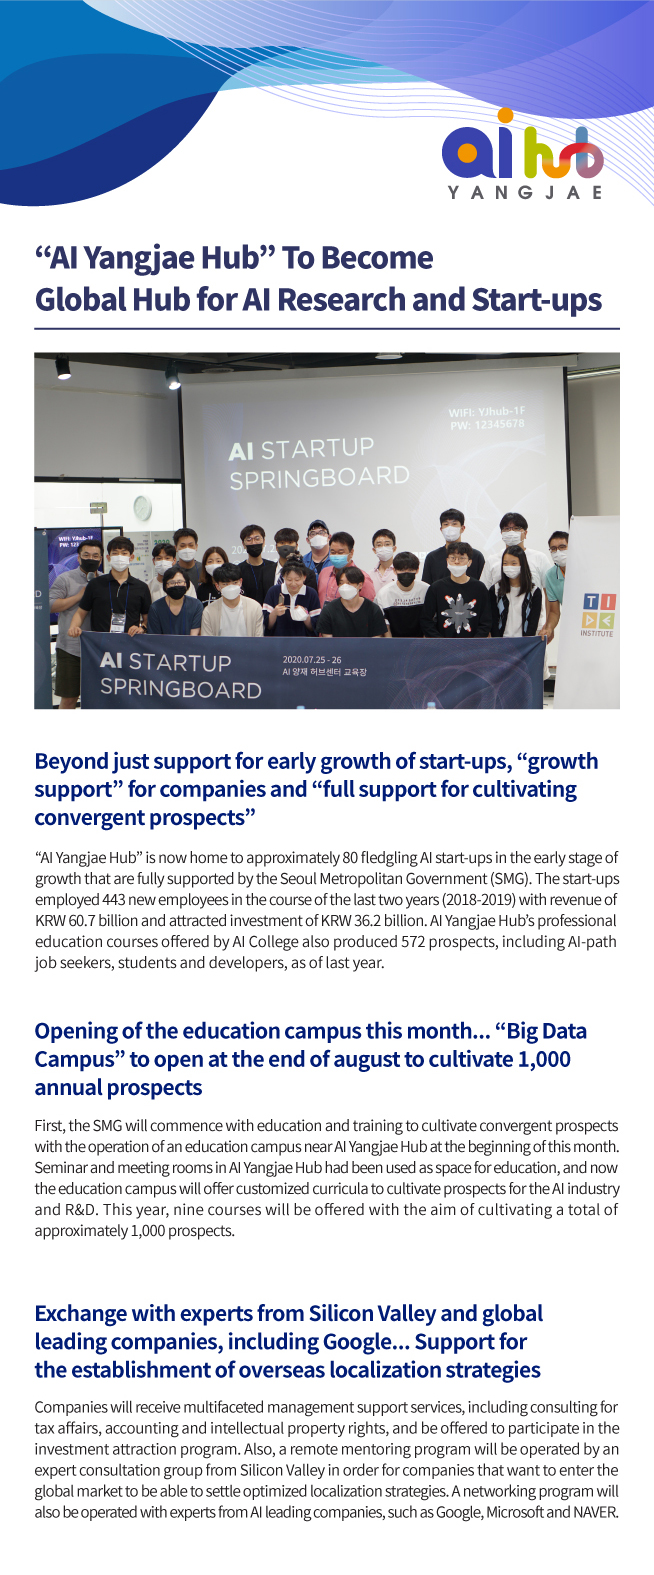 """""""AI Yangjae Hub"""" To Become Global Hub for AI Research and Start-ups Beyond just support for early growth of start-ups, """"growth support"""" for companies and """"full support for cultivating convergent prospects""""  """"AI Yangjae Hub"""" is now home to approximately 80 fledgling AI start-ups in the early stage of growth that are fully supported by the Seoul Metropolitan Government (SMG). The start-ups employed 443 new employees in the course of the last two years (2018-2019) with revenue of KRW 60.7 billion and attracted investment of KRW 36.2 billion. AI Yangjae Hub's professional education courses offered by AI College also produced 572 prospects, including AI-path job seekers, students and developers, as of last year. Opening of the education campus this month... """"Big Data Campus"""" to open at the end of august to cultivate 1,000 annual prospects First, the SMG will commence with education and training to cultivate convergent prospects with the operation of an education campus near AI Yangjae Hub at the beginning of this month. Seminar and meeting rooms in AI Yangjae Hub had been used as space for education, and now the education campus will offer customized curricula to cultivate prospects for the AI industry and R&D. This year, nine courses will be offered with the aim of cultivating a total of approximately 1,000 prospects. Exchange with experts from Silicon Valley and global leading companies, including Google... Support for the establishment of overseas localization strategies Companies will receive multifaceted management support services, including consulting for tax affairs, accounting and intellectual property rights, and be offered to participate in the investment attraction program. Also, a remote mentoring program will be operated by an expert consultation group from Silicon Valley in order for companies that want to enter the global market to be able to settle optimized localization strategies. A networking program will also be operated with experts from AI leading """